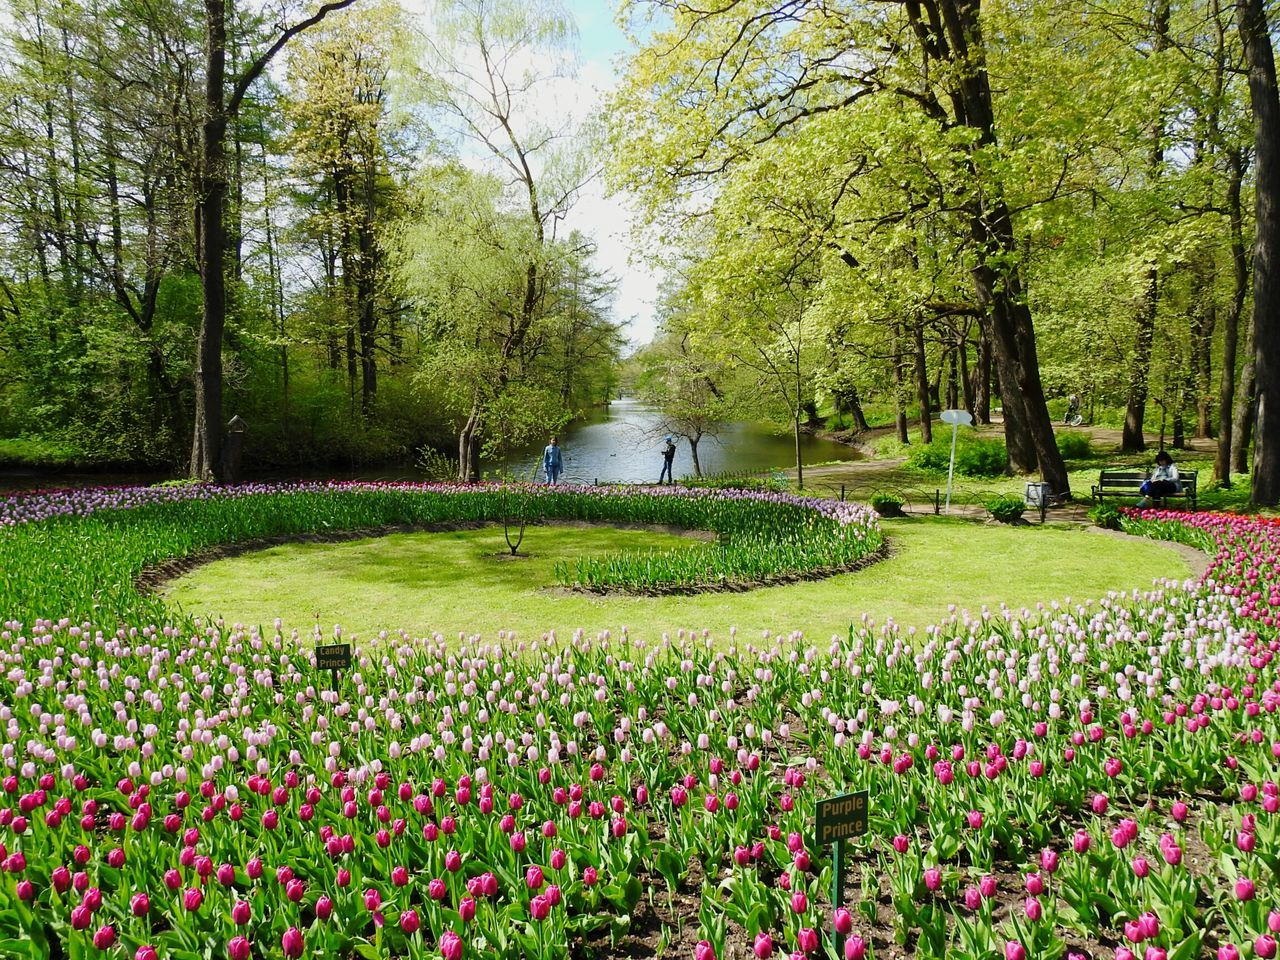 Tulips In The Forest The Street Photographer - 2017 EyeEm Awards The Great Outdoors - 2017 EyeEm Awards Flower Festival Of Tulips Flowers Sunny Day 🌞 Tulips🌷 My City View My City My Love Elagin Island Park Streetphotography Colors Of Sankt-Peterburg Springtime Sankt-Petersburg Russia